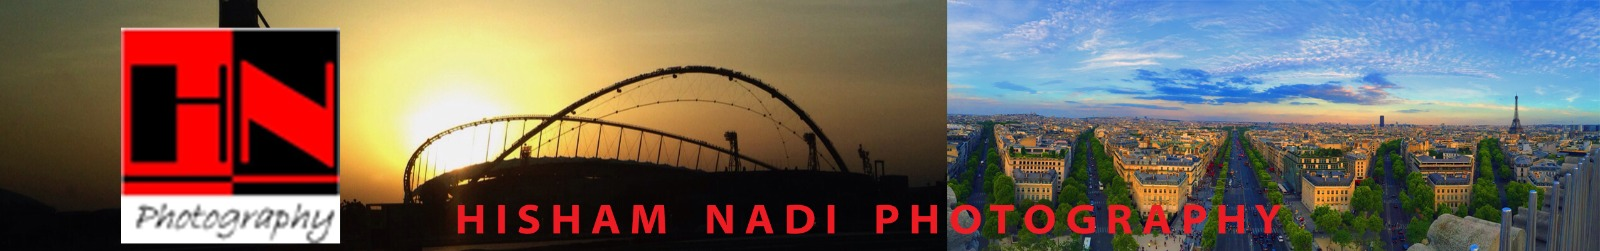 Hisham Nadi Photography